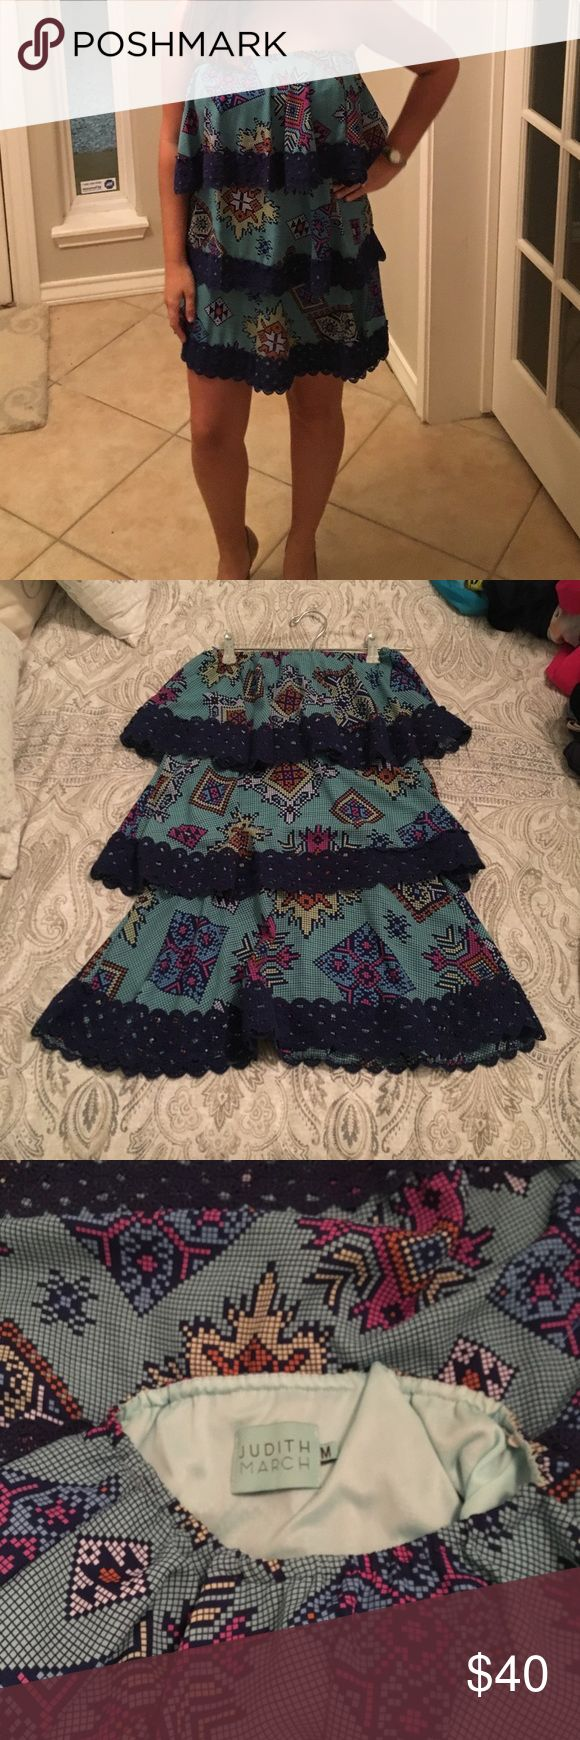 Judith March tiered dress This fun Judith March dress is comfy and cute! Three tiers with beautiful dark blue crochet details on each tier. Great condition! Judith March Dresses Strapless